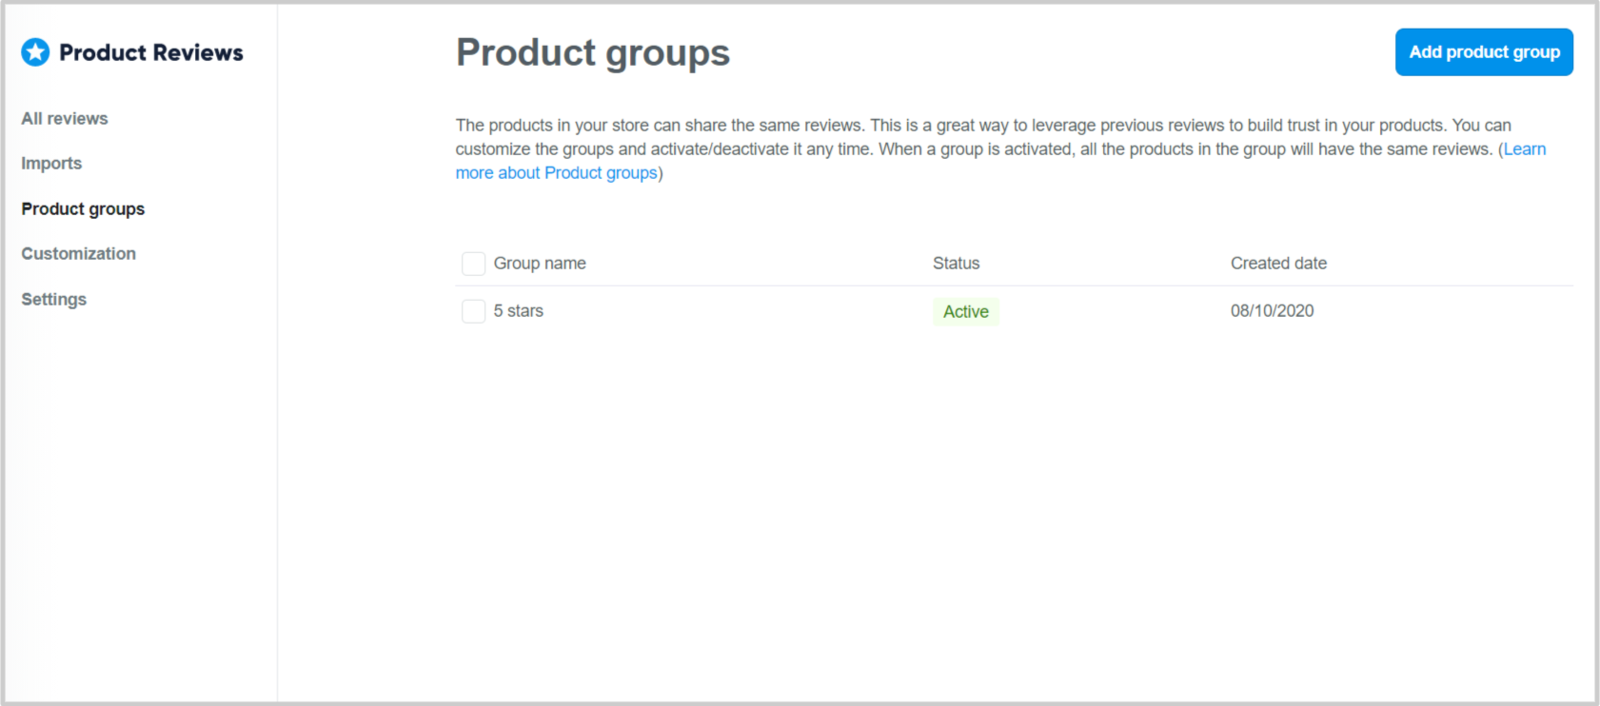 To group your reviews, click Add new product group